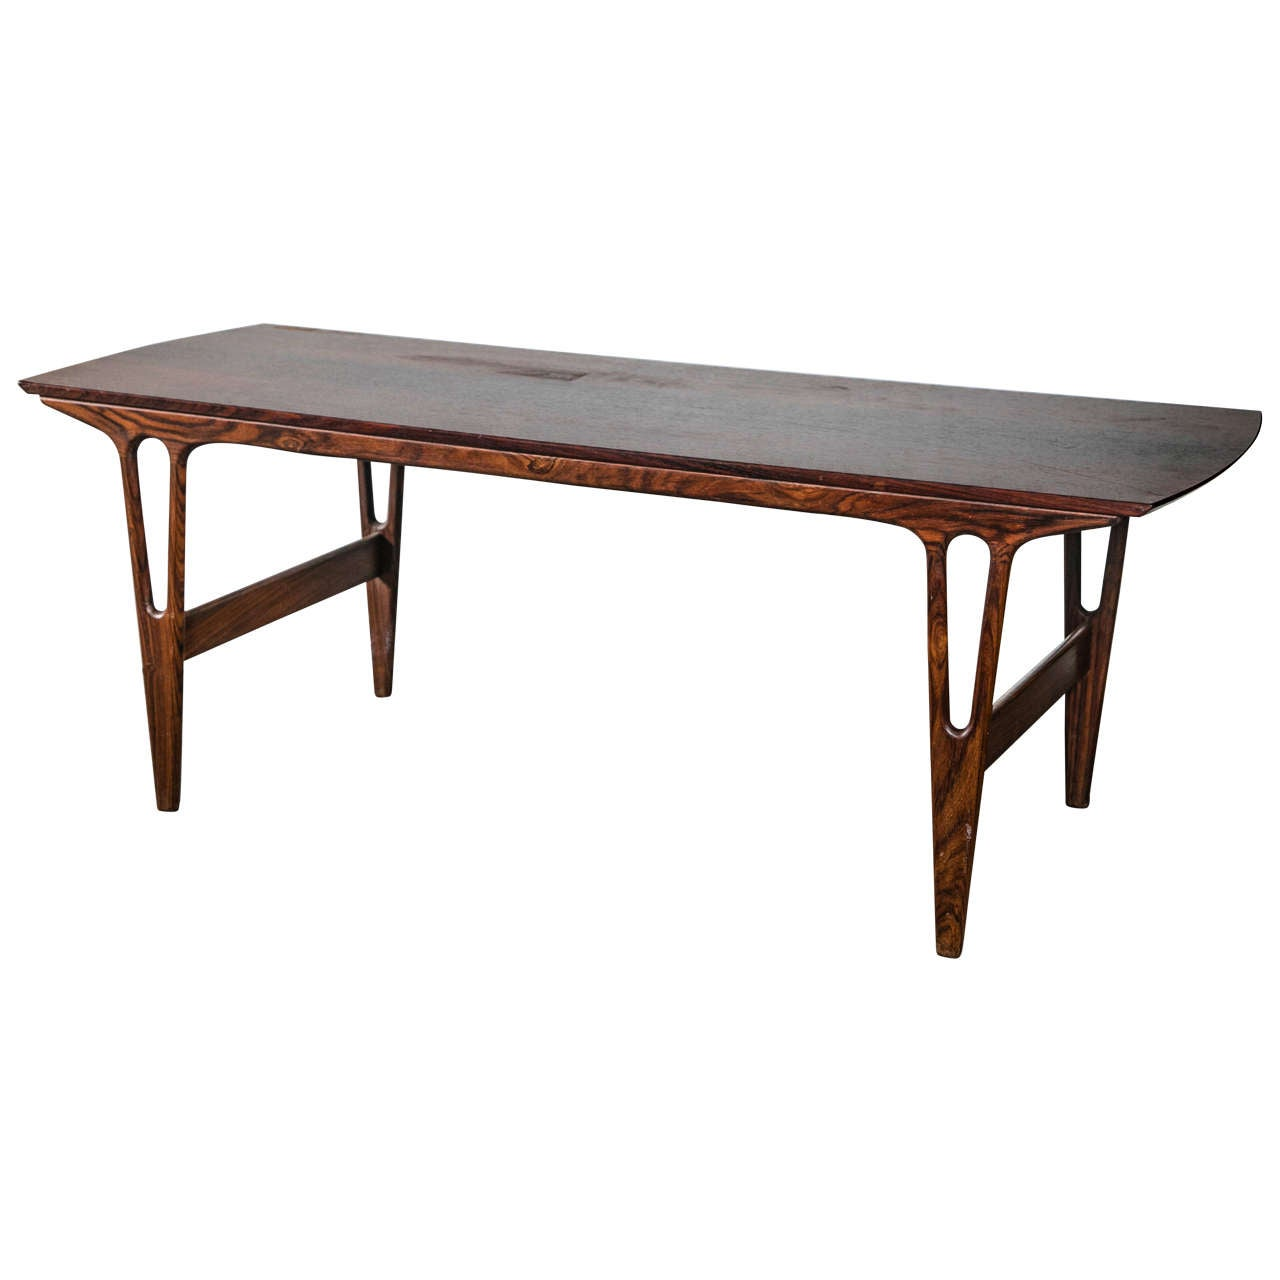 Rosewood Danish Mid-Century Modern Coffee Table At 1stdibs